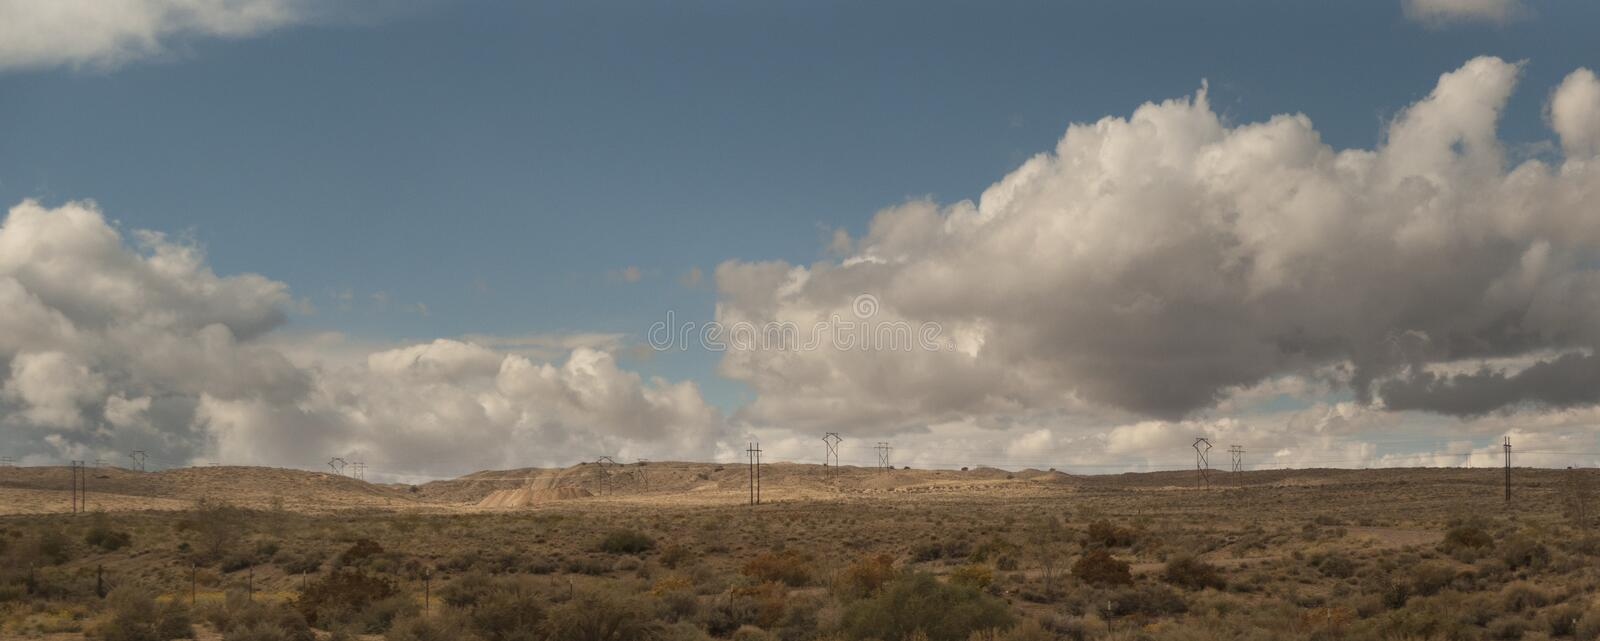 New Mexico landscape with power lines and clouds. Fair weather clouds in the autumn landscape of eastern New Mexico. Electric power lines cross the desert in a stock photography